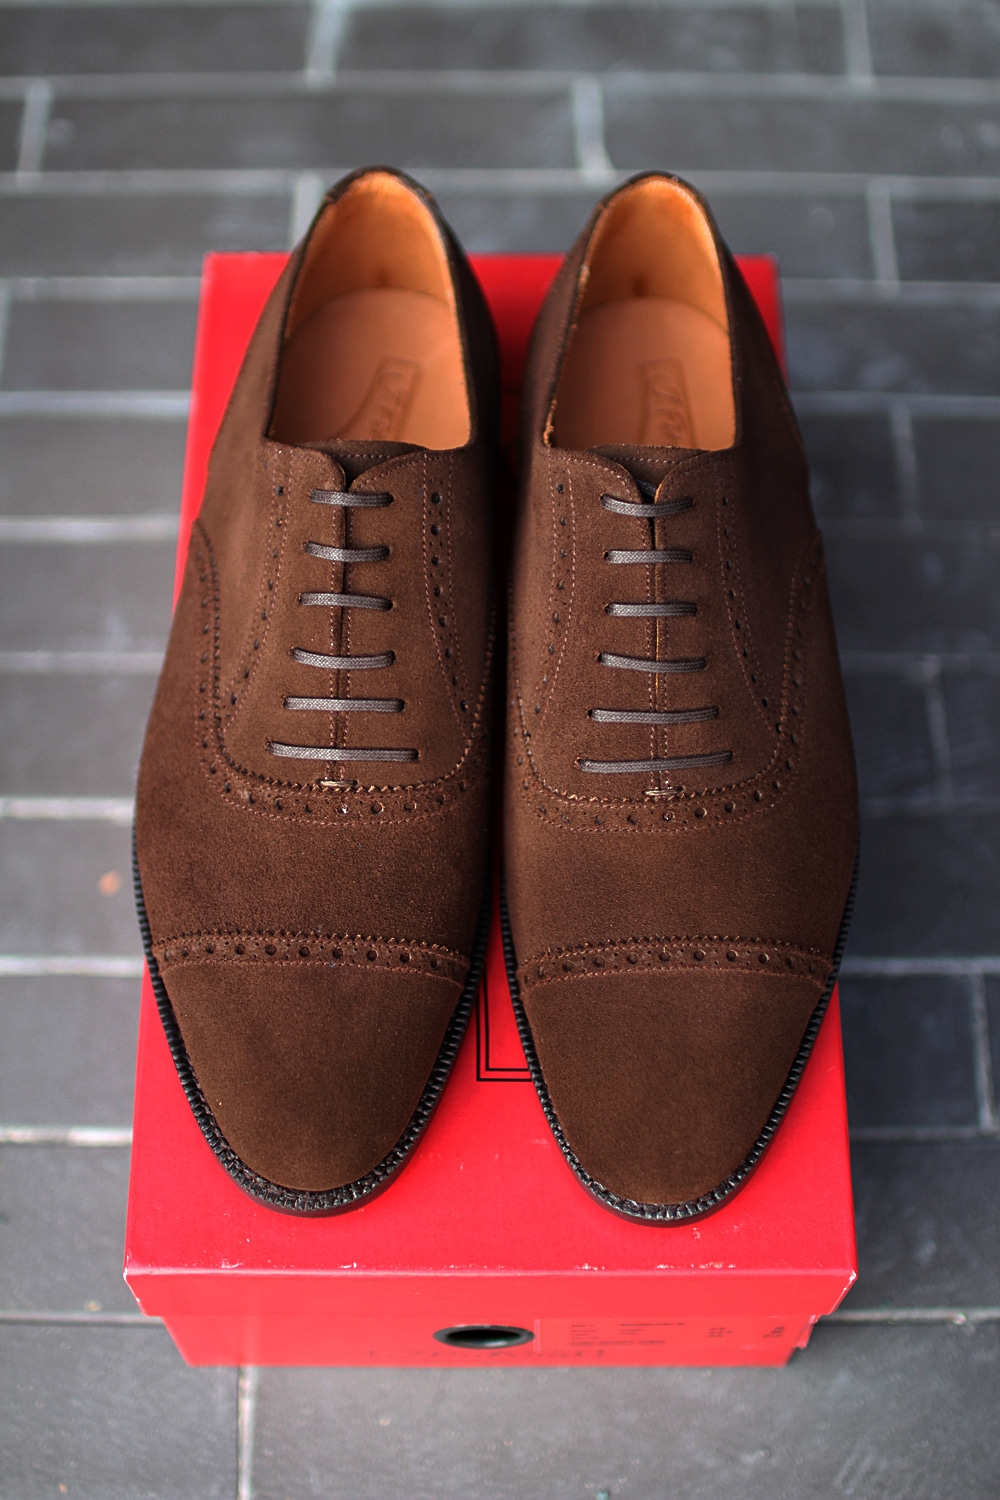 Straight tip Dark brown suede REDMOND3J.fitz patrick(제이피츠패트릭)